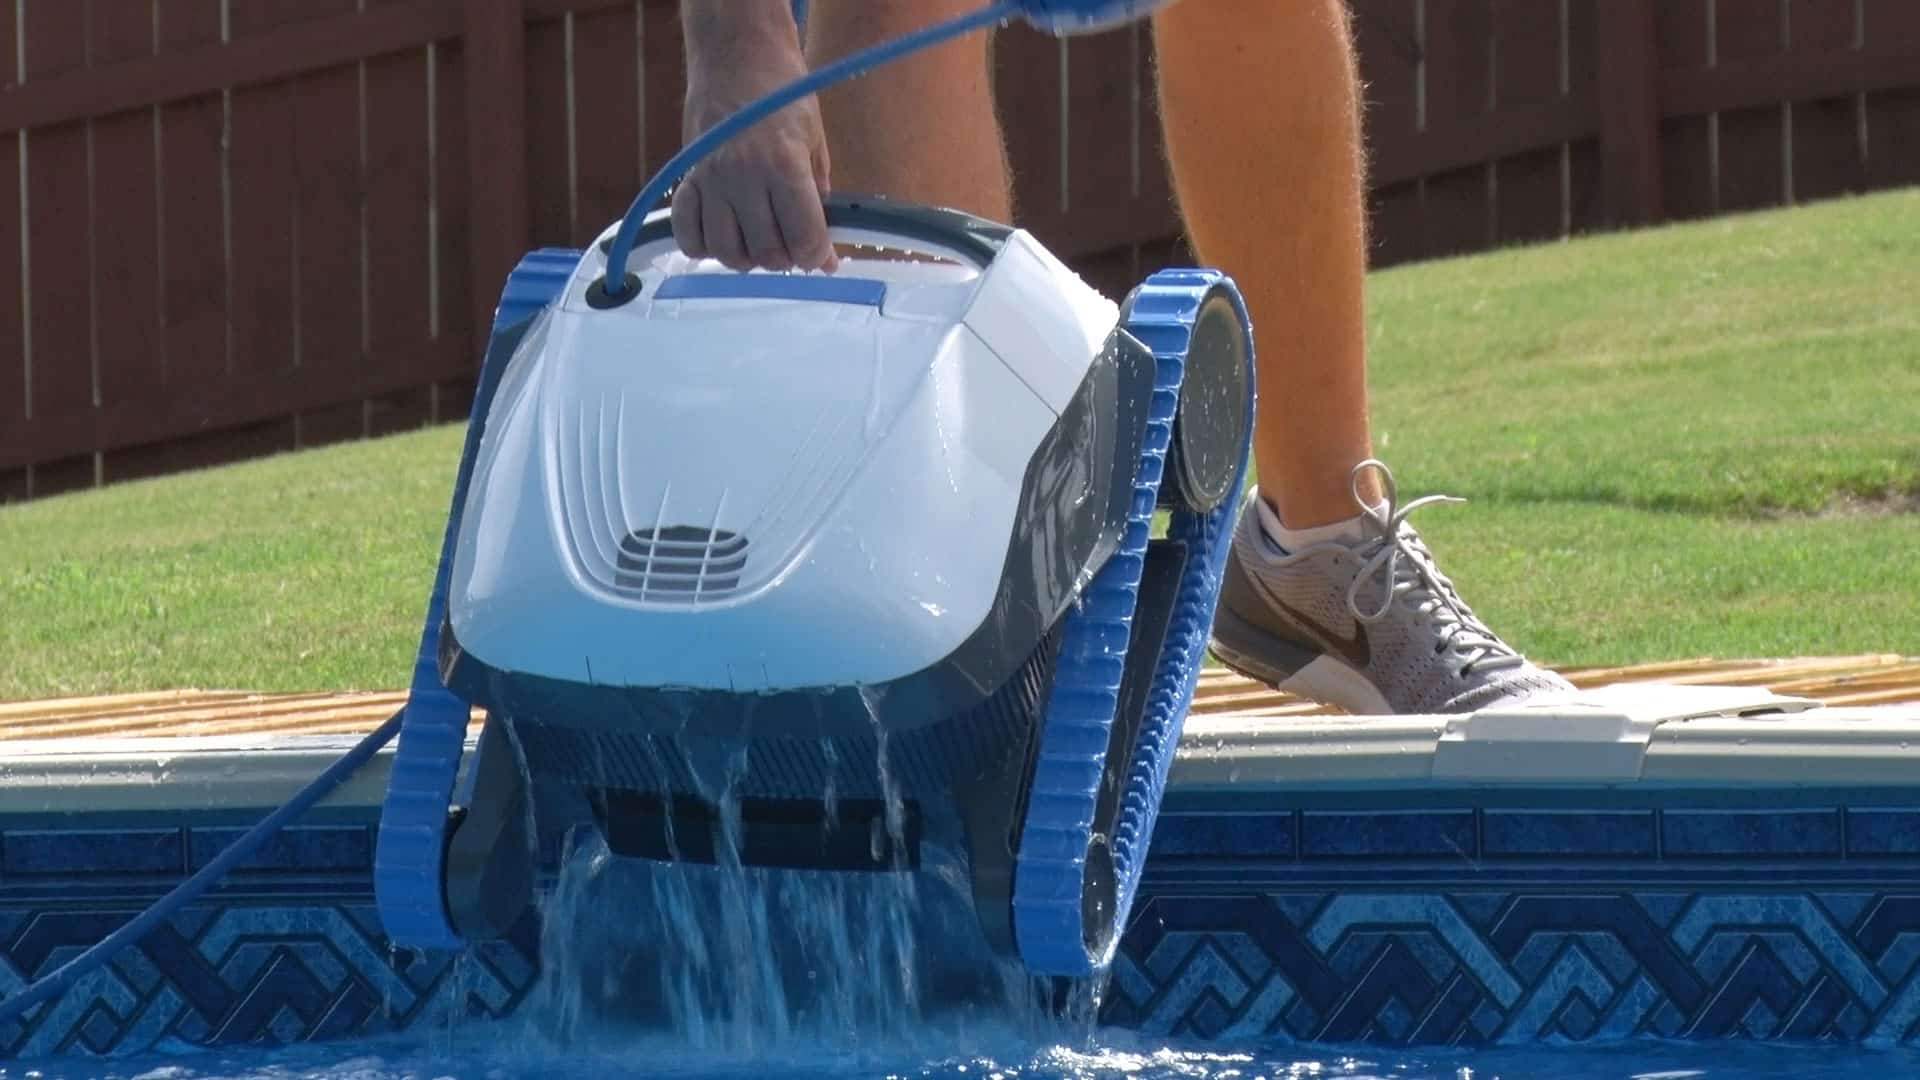 Dolphin S50 Robotic Pool Cleaner